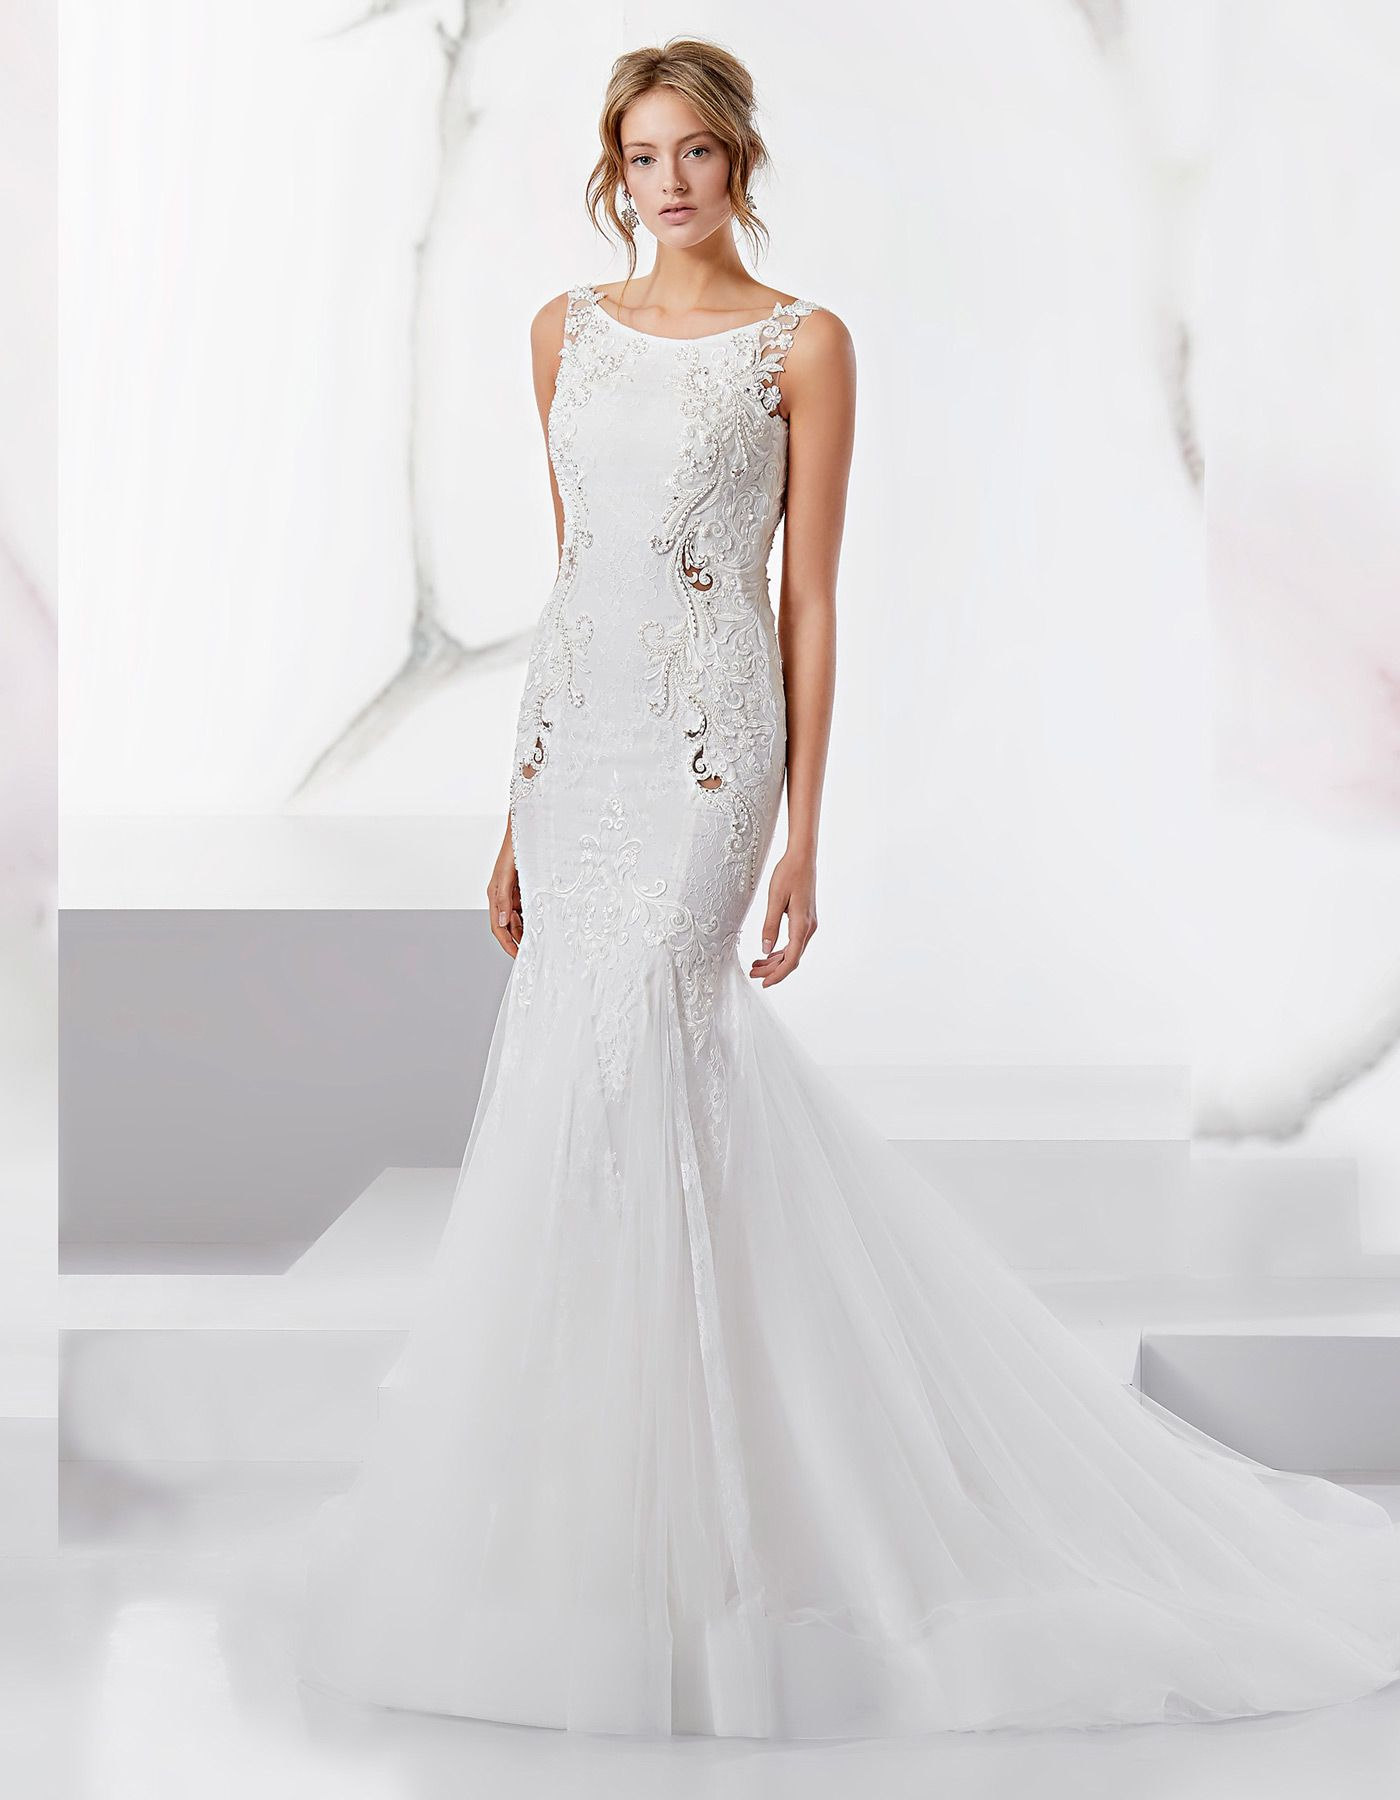 Sophisticated Lace Wedding Dress 18521 By Nicole Spose Bridal